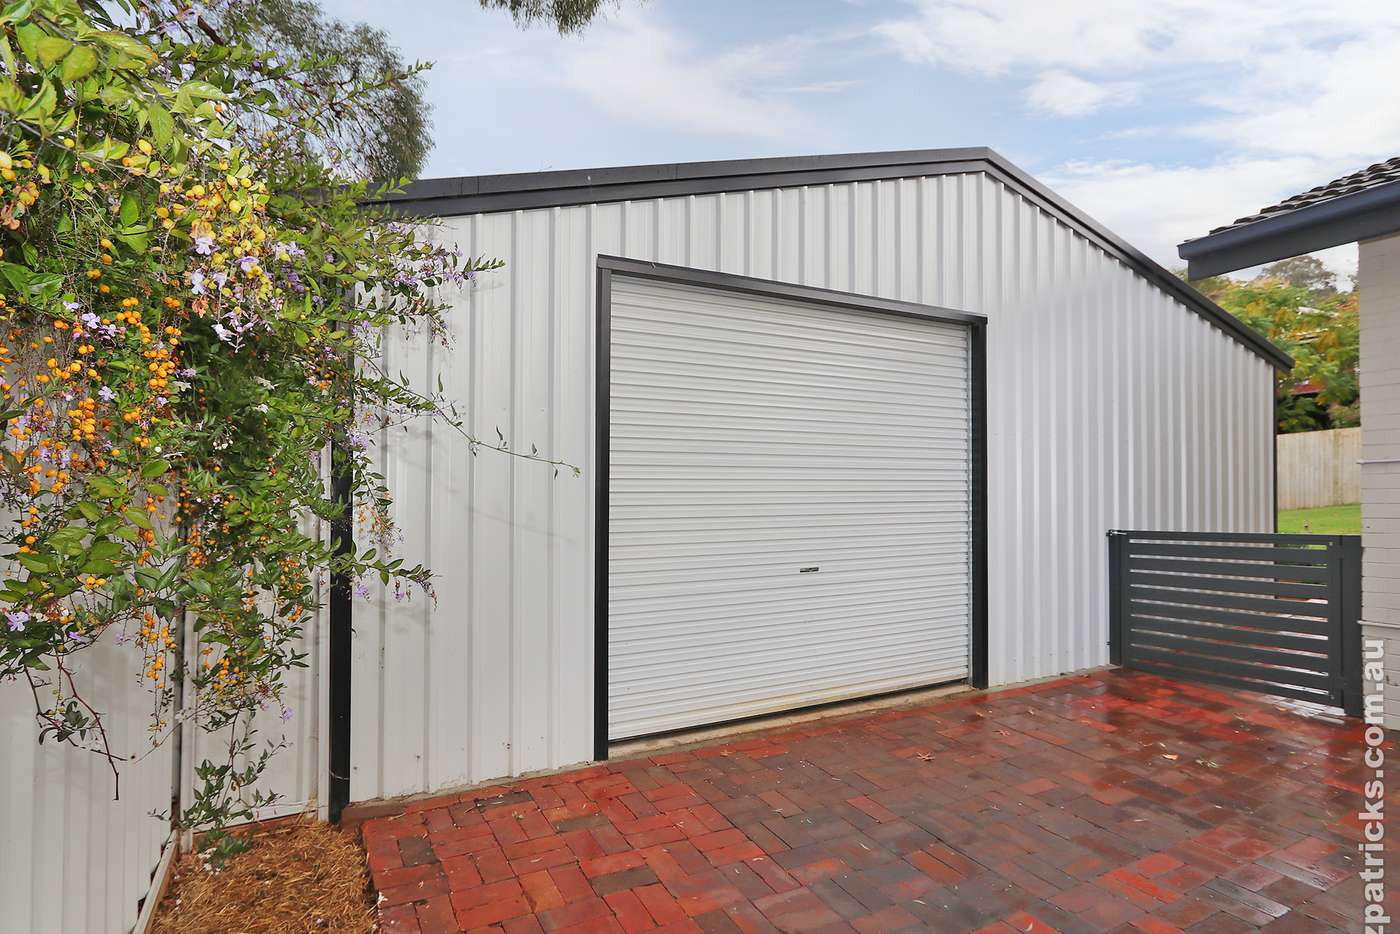 Sixth view of Homely house listing, 3 Raleigh Place, Kooringal NSW 2650